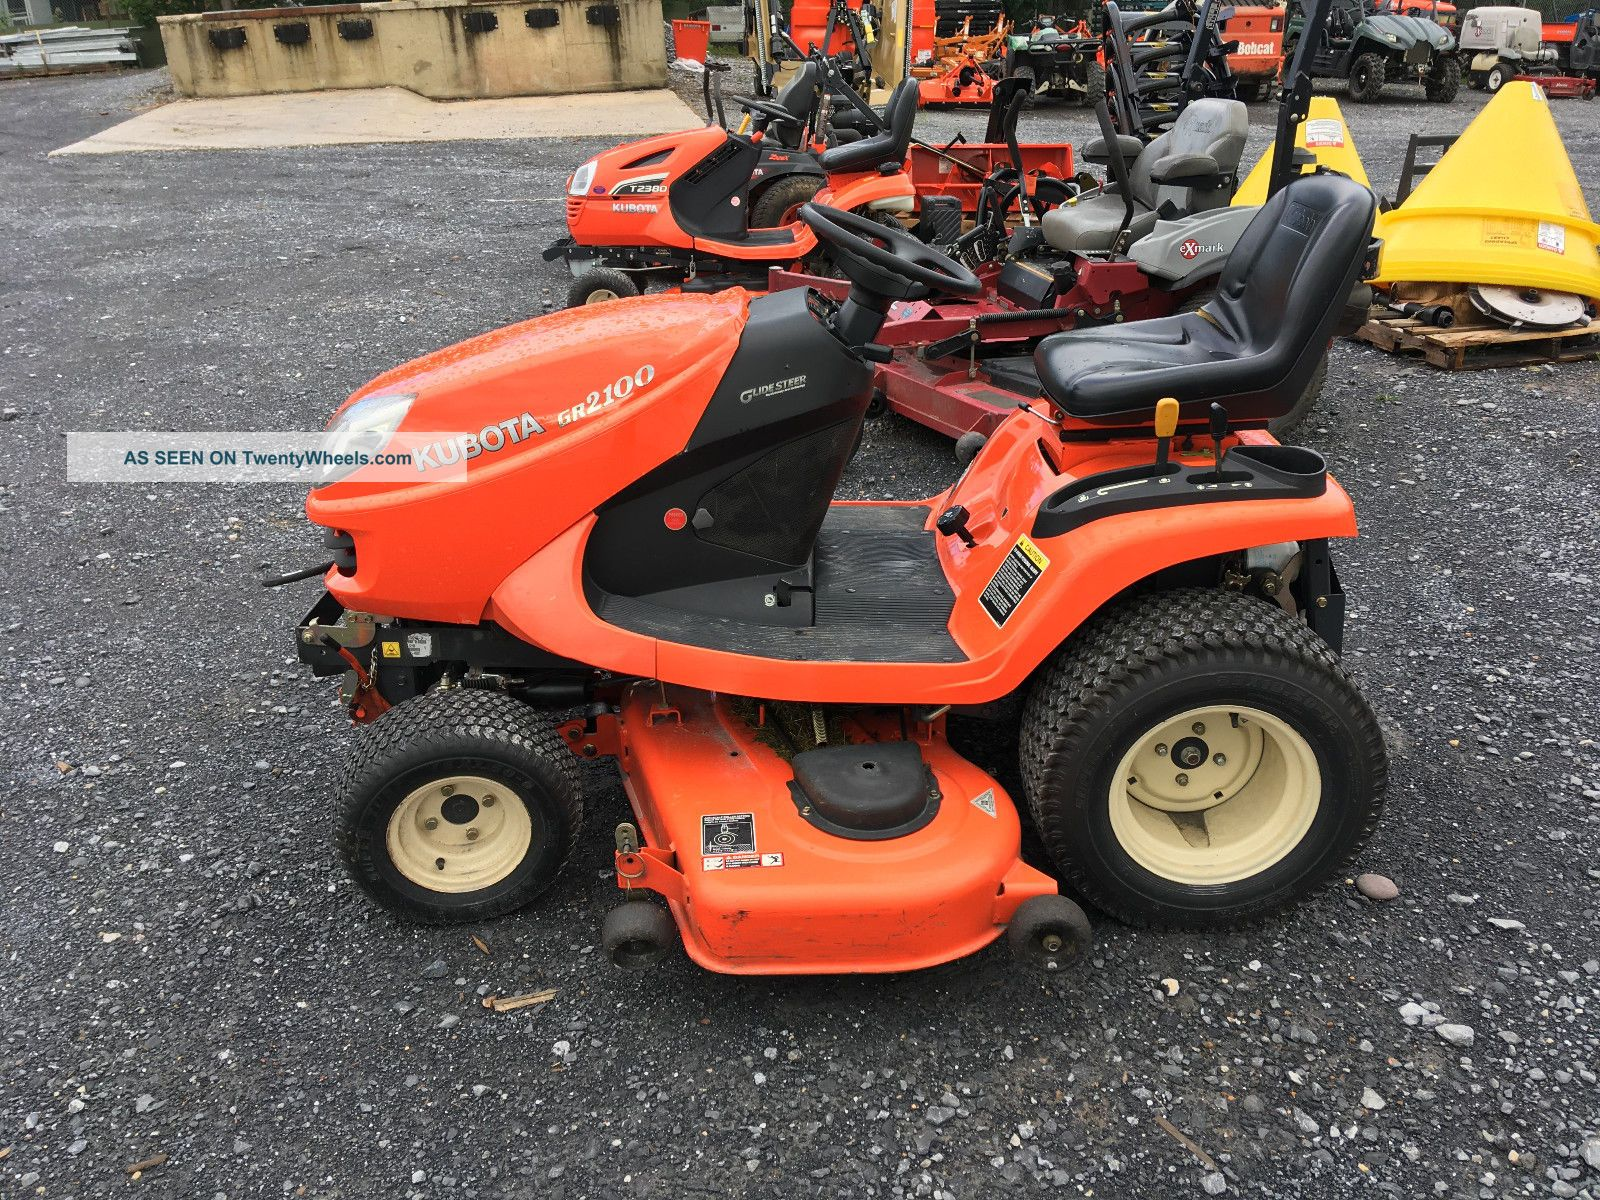 Gr 2100 With Snowblower Tractors photo